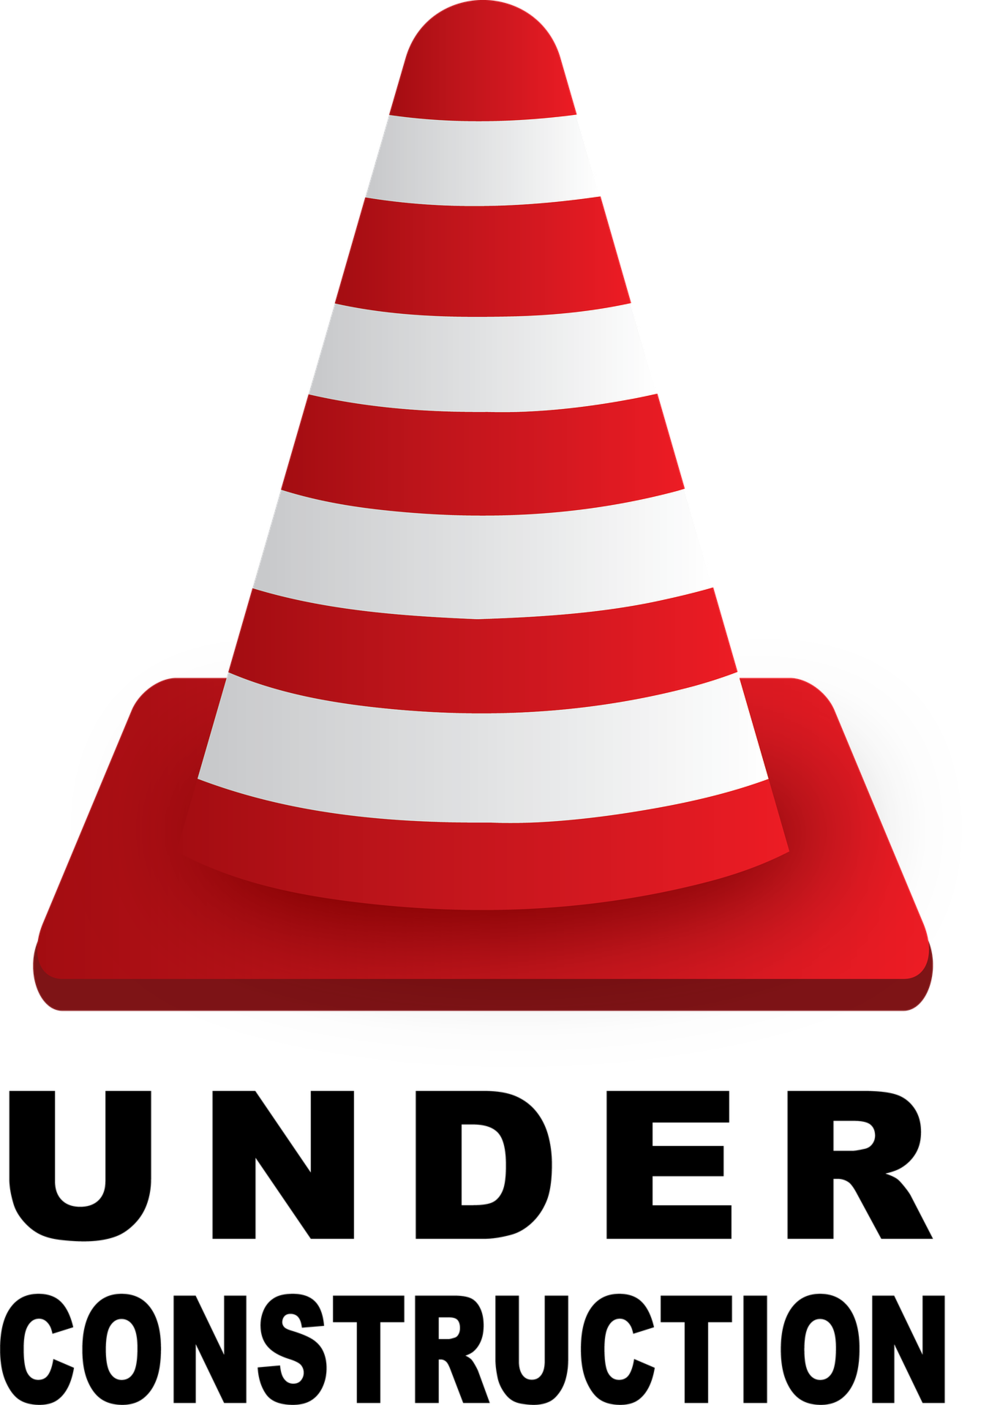 Under Construction Cone.png